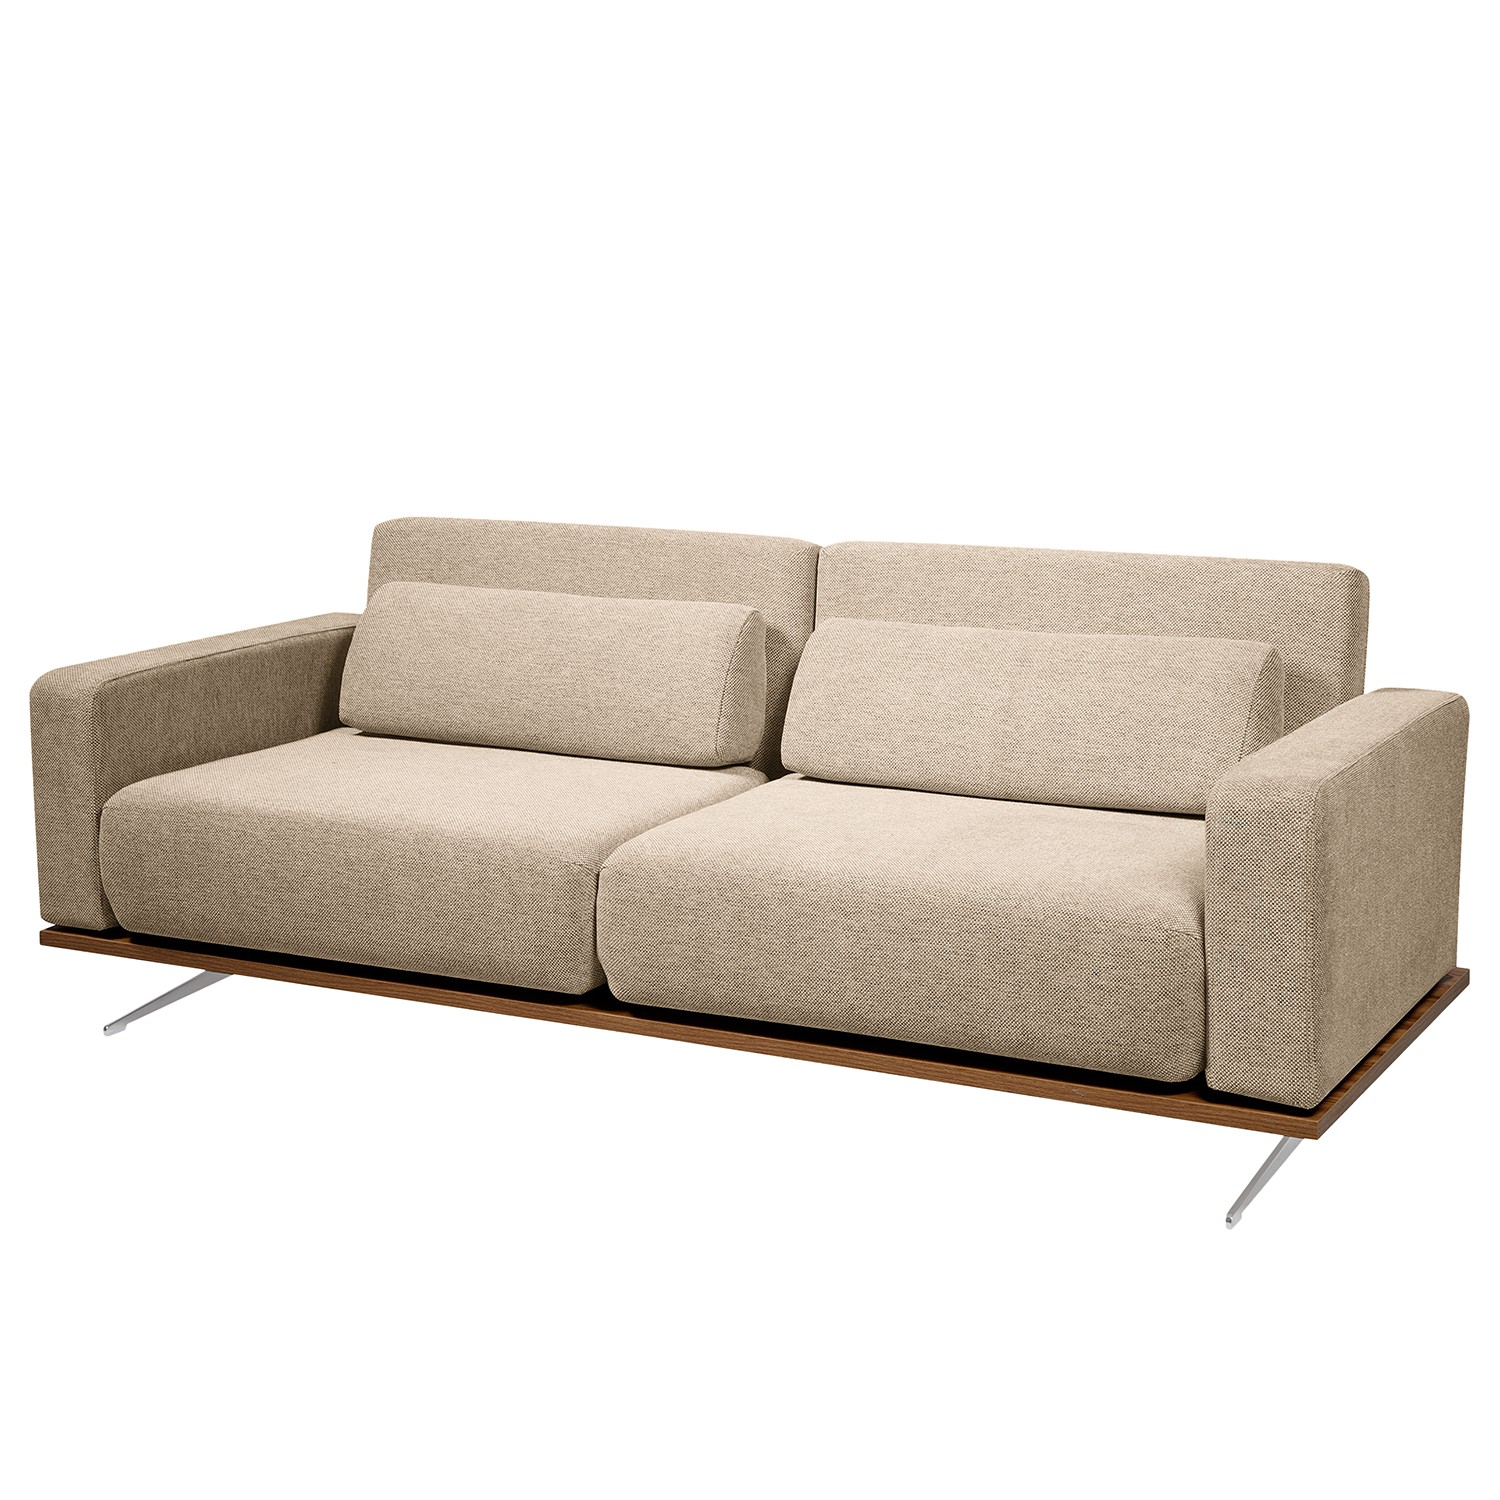 Sessel Copperfield Sessel Copperfield | Loungesofas | Gartensofas In Rattan ...